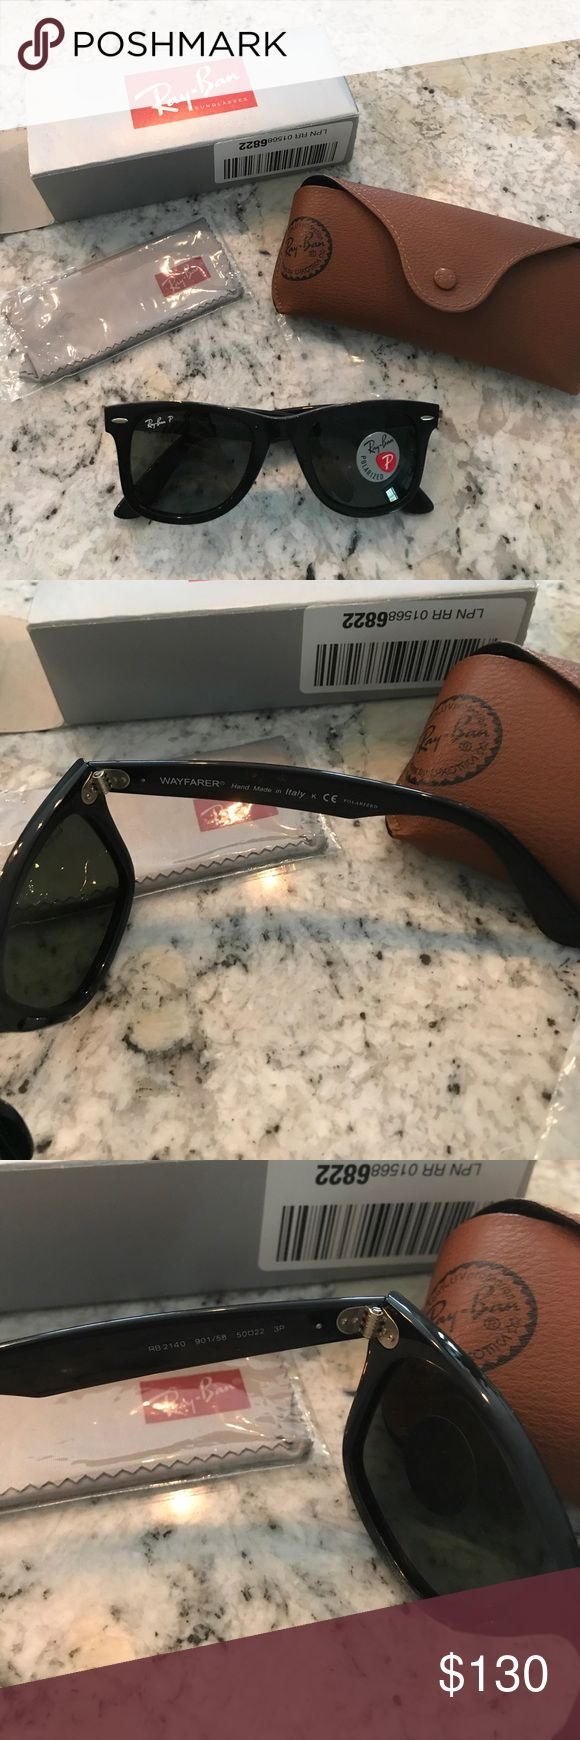 Brand New Ray Ban Wayfarer polarized sunglasses These are brand new in the box - only taken out for pictures! My husband ordered these by mistake and forgot to return them 🙄 they are polarized and unisex! they come with a new, sealed dust cloth and brown leather case! Ray-Ban Accessories Sunglasses